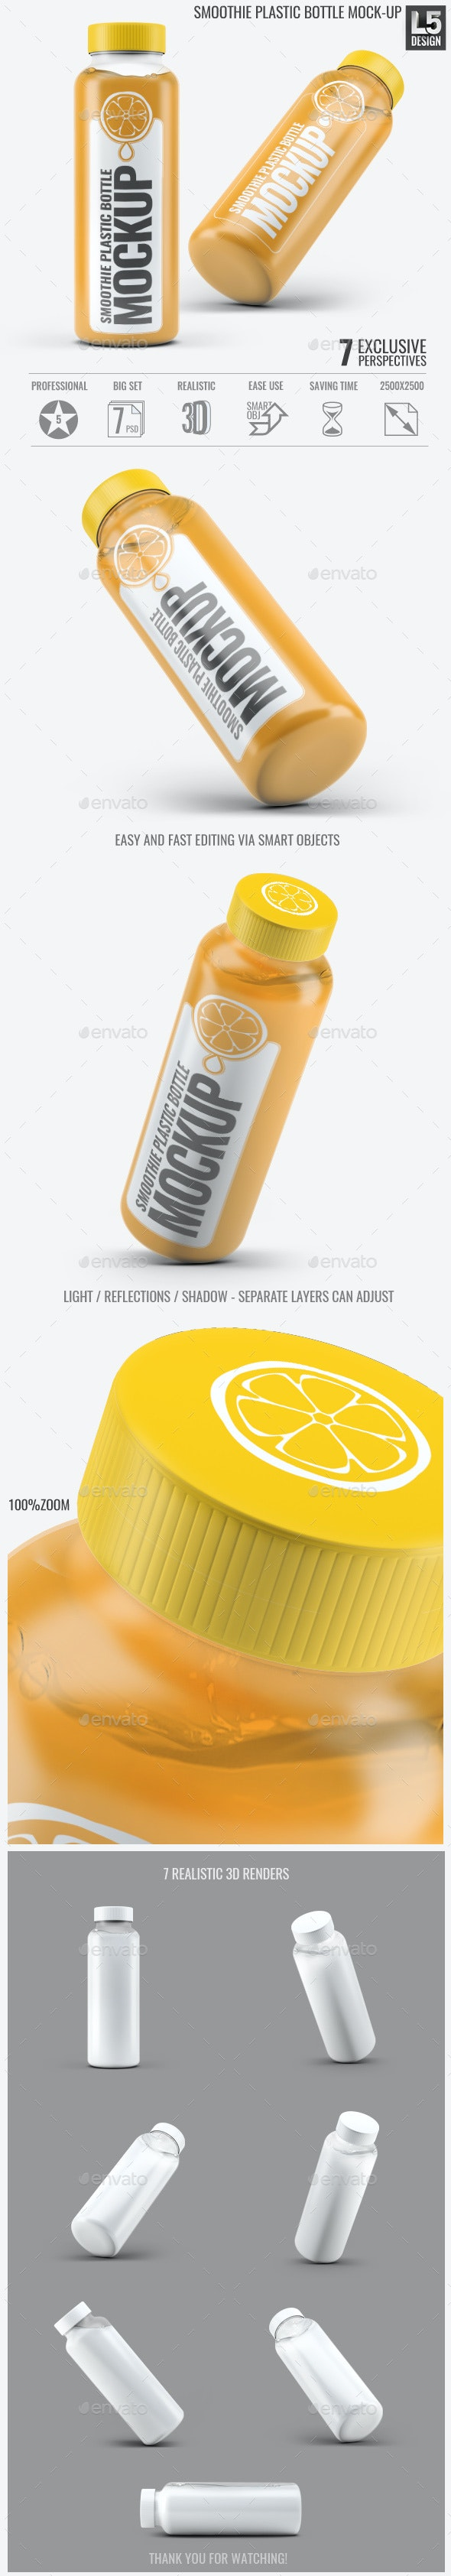 Smoothie Plastic Bottle Mock-Up - Food and Drink Packaging